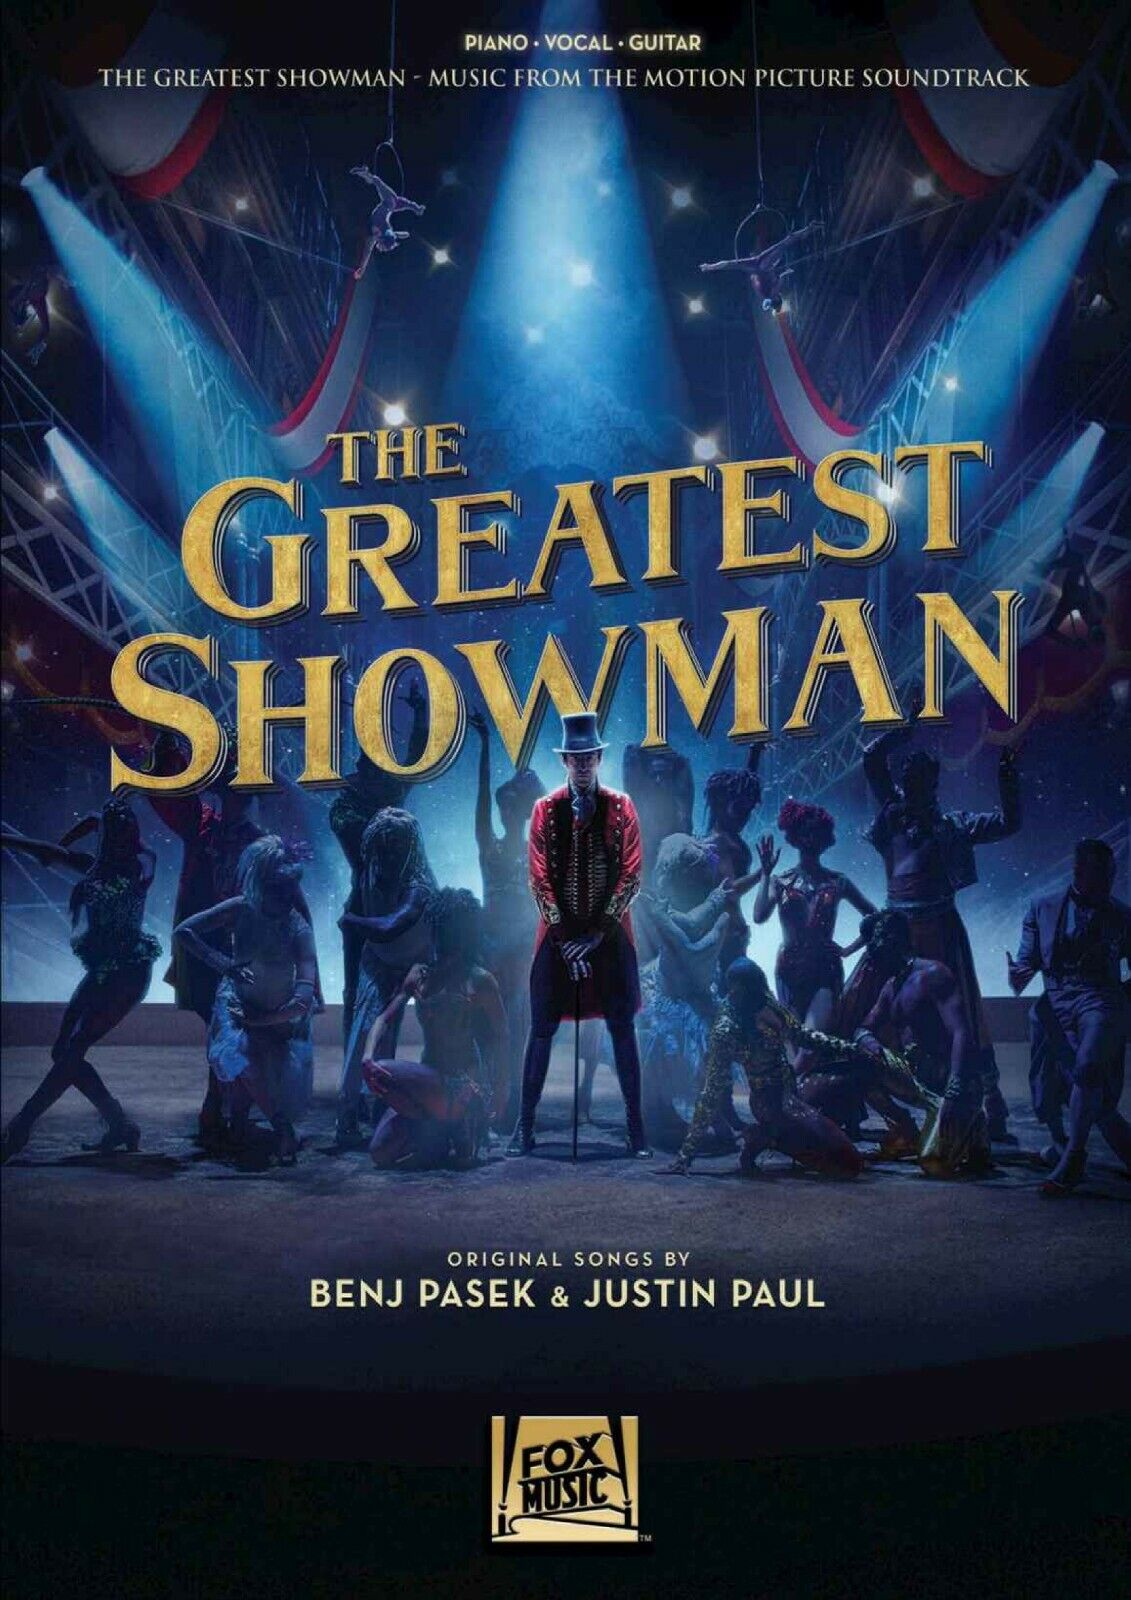 The Greatest Showman Songbook: Music from the Motion Picture